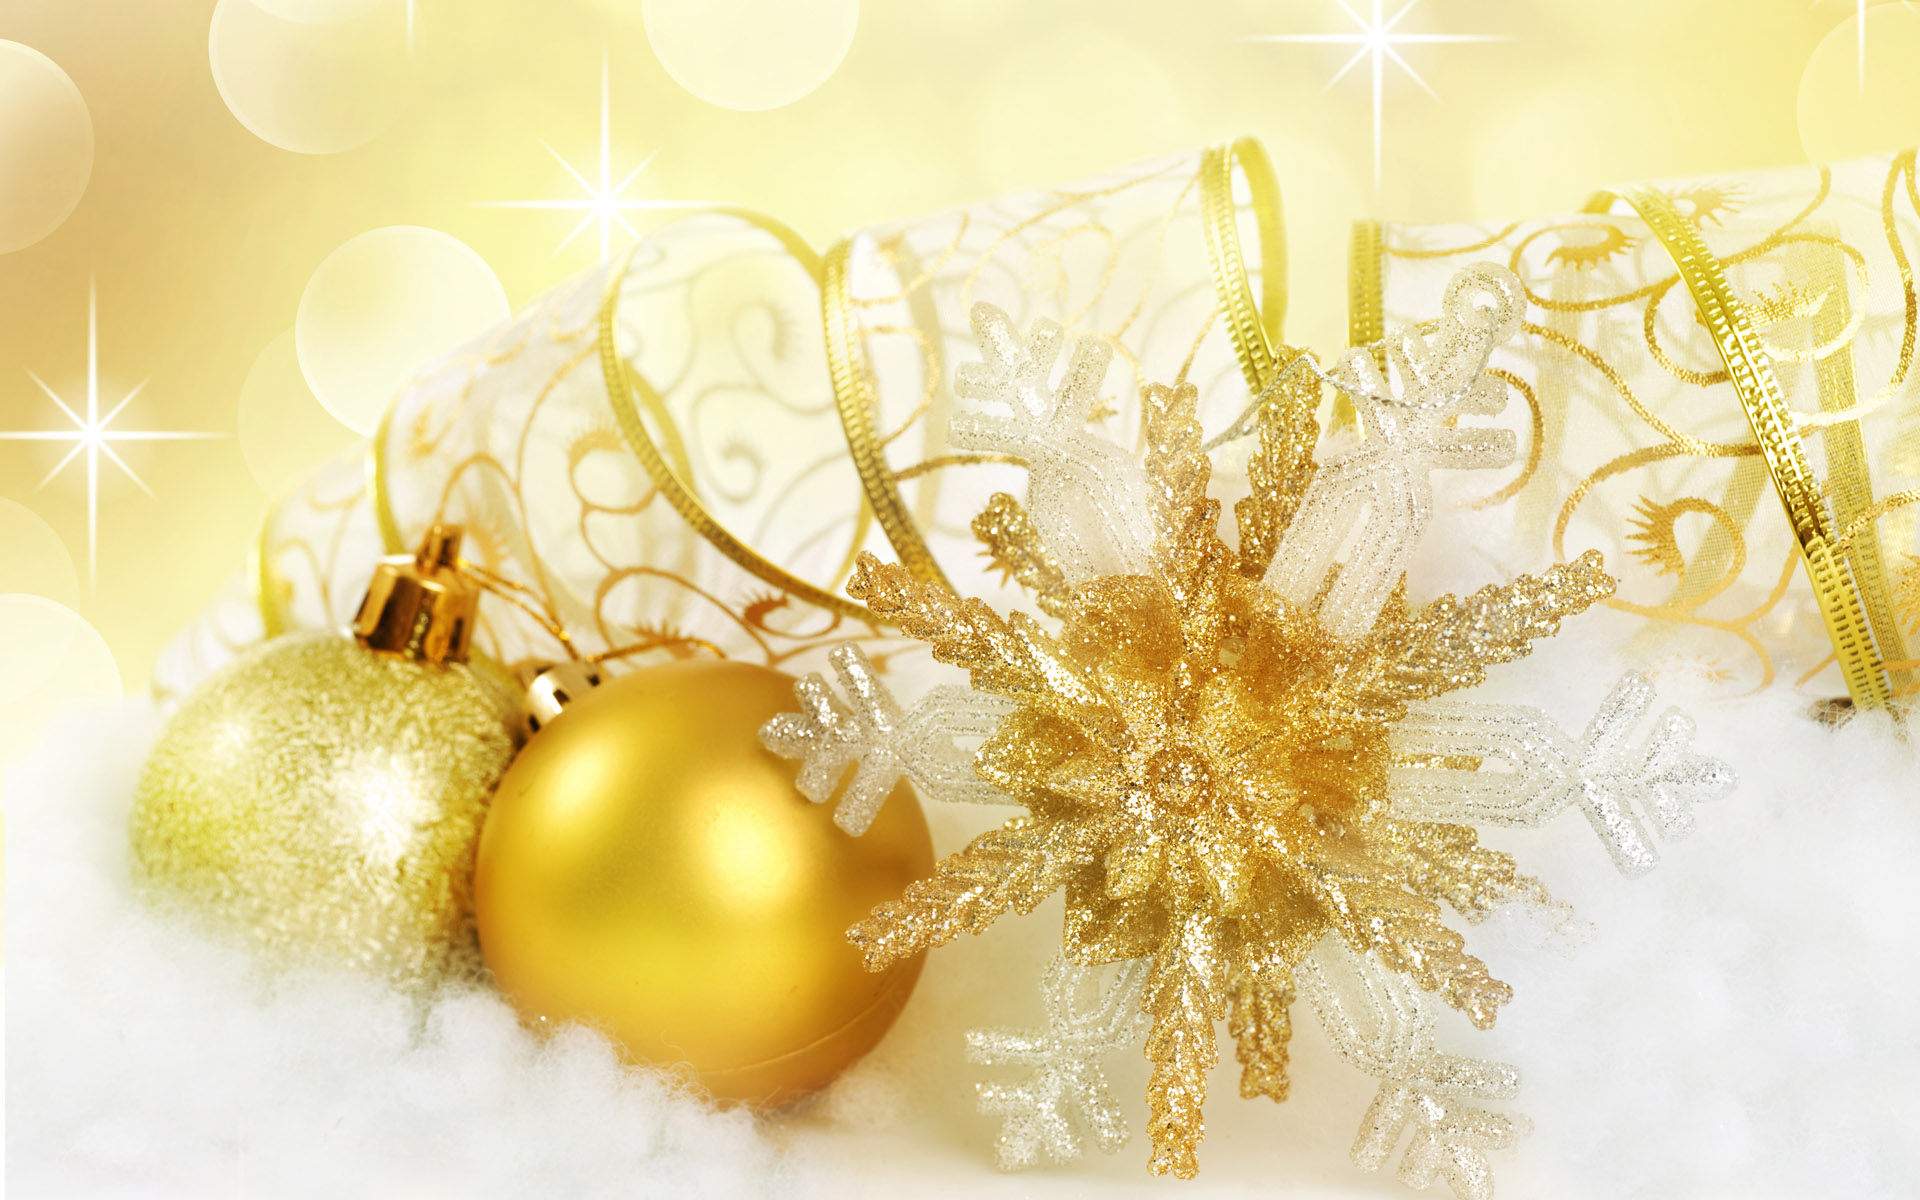 Most Cute Wallpaper 100 Best Hd Christmas Wallpapers For Your Desktop